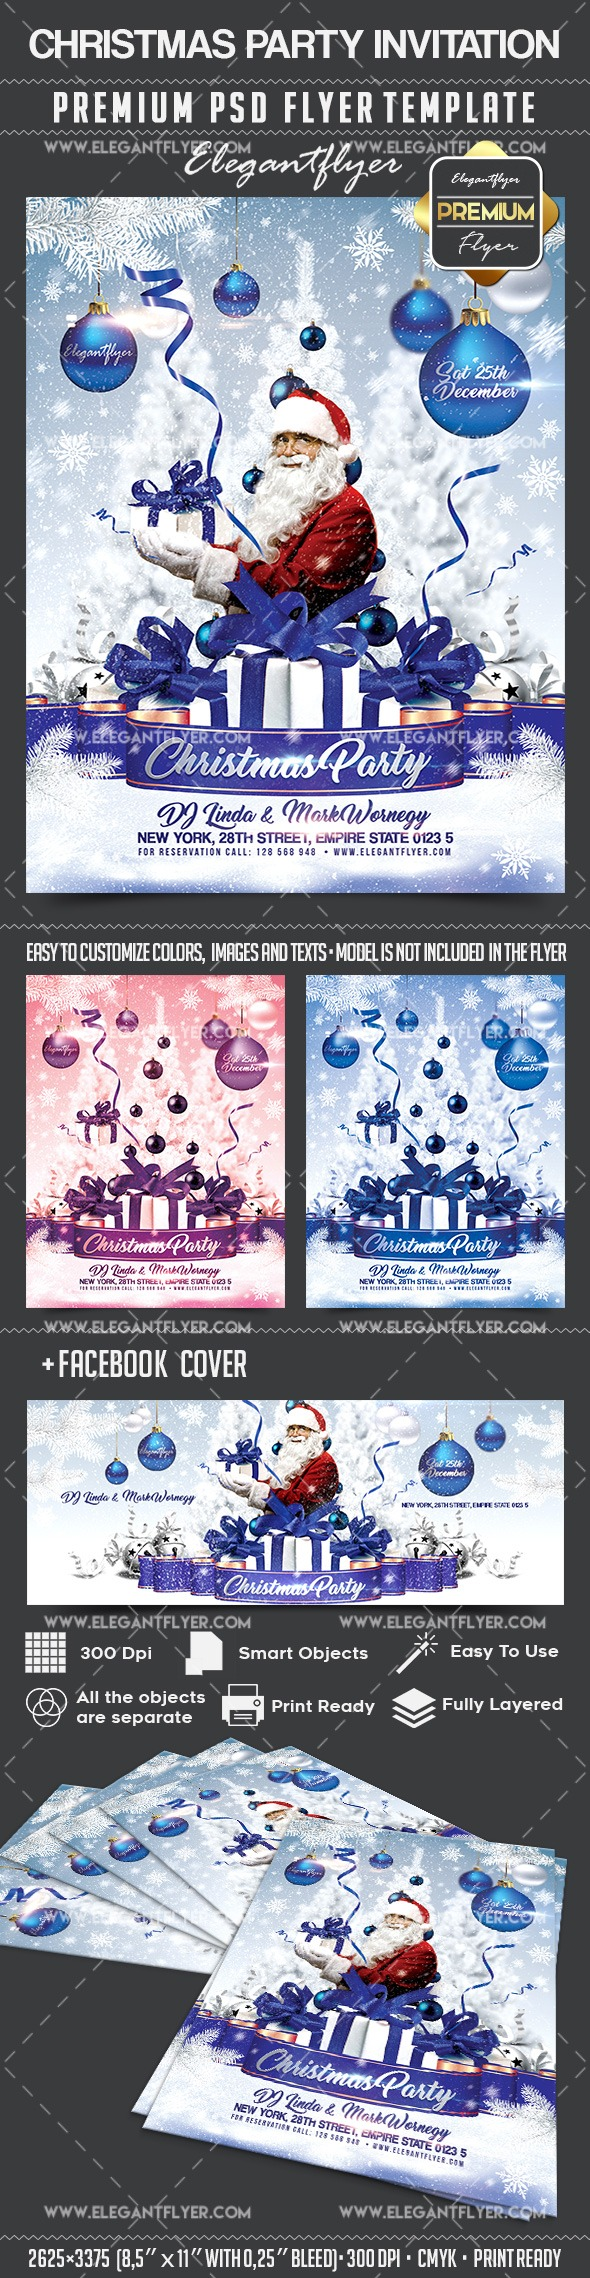 Christmas Party Invitation – Flyer PSD Template – by ElegantFlyer